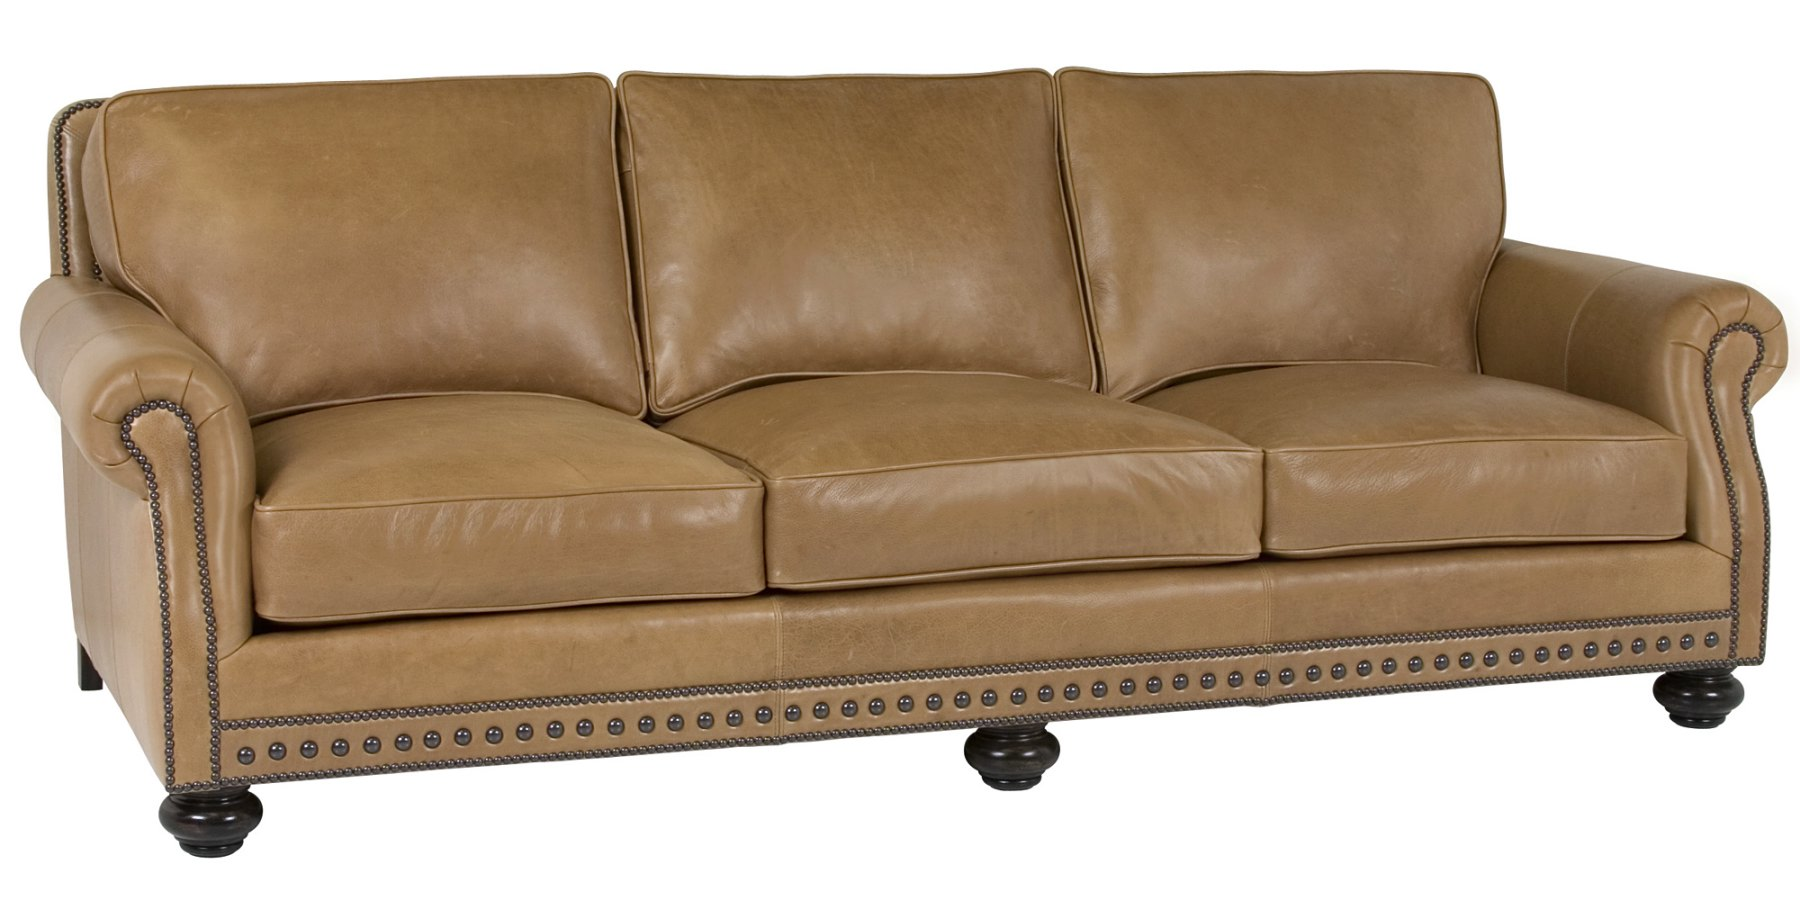 Leather Pillow Back Sofa With Rolled Arms And Nail Trim Club Furniture